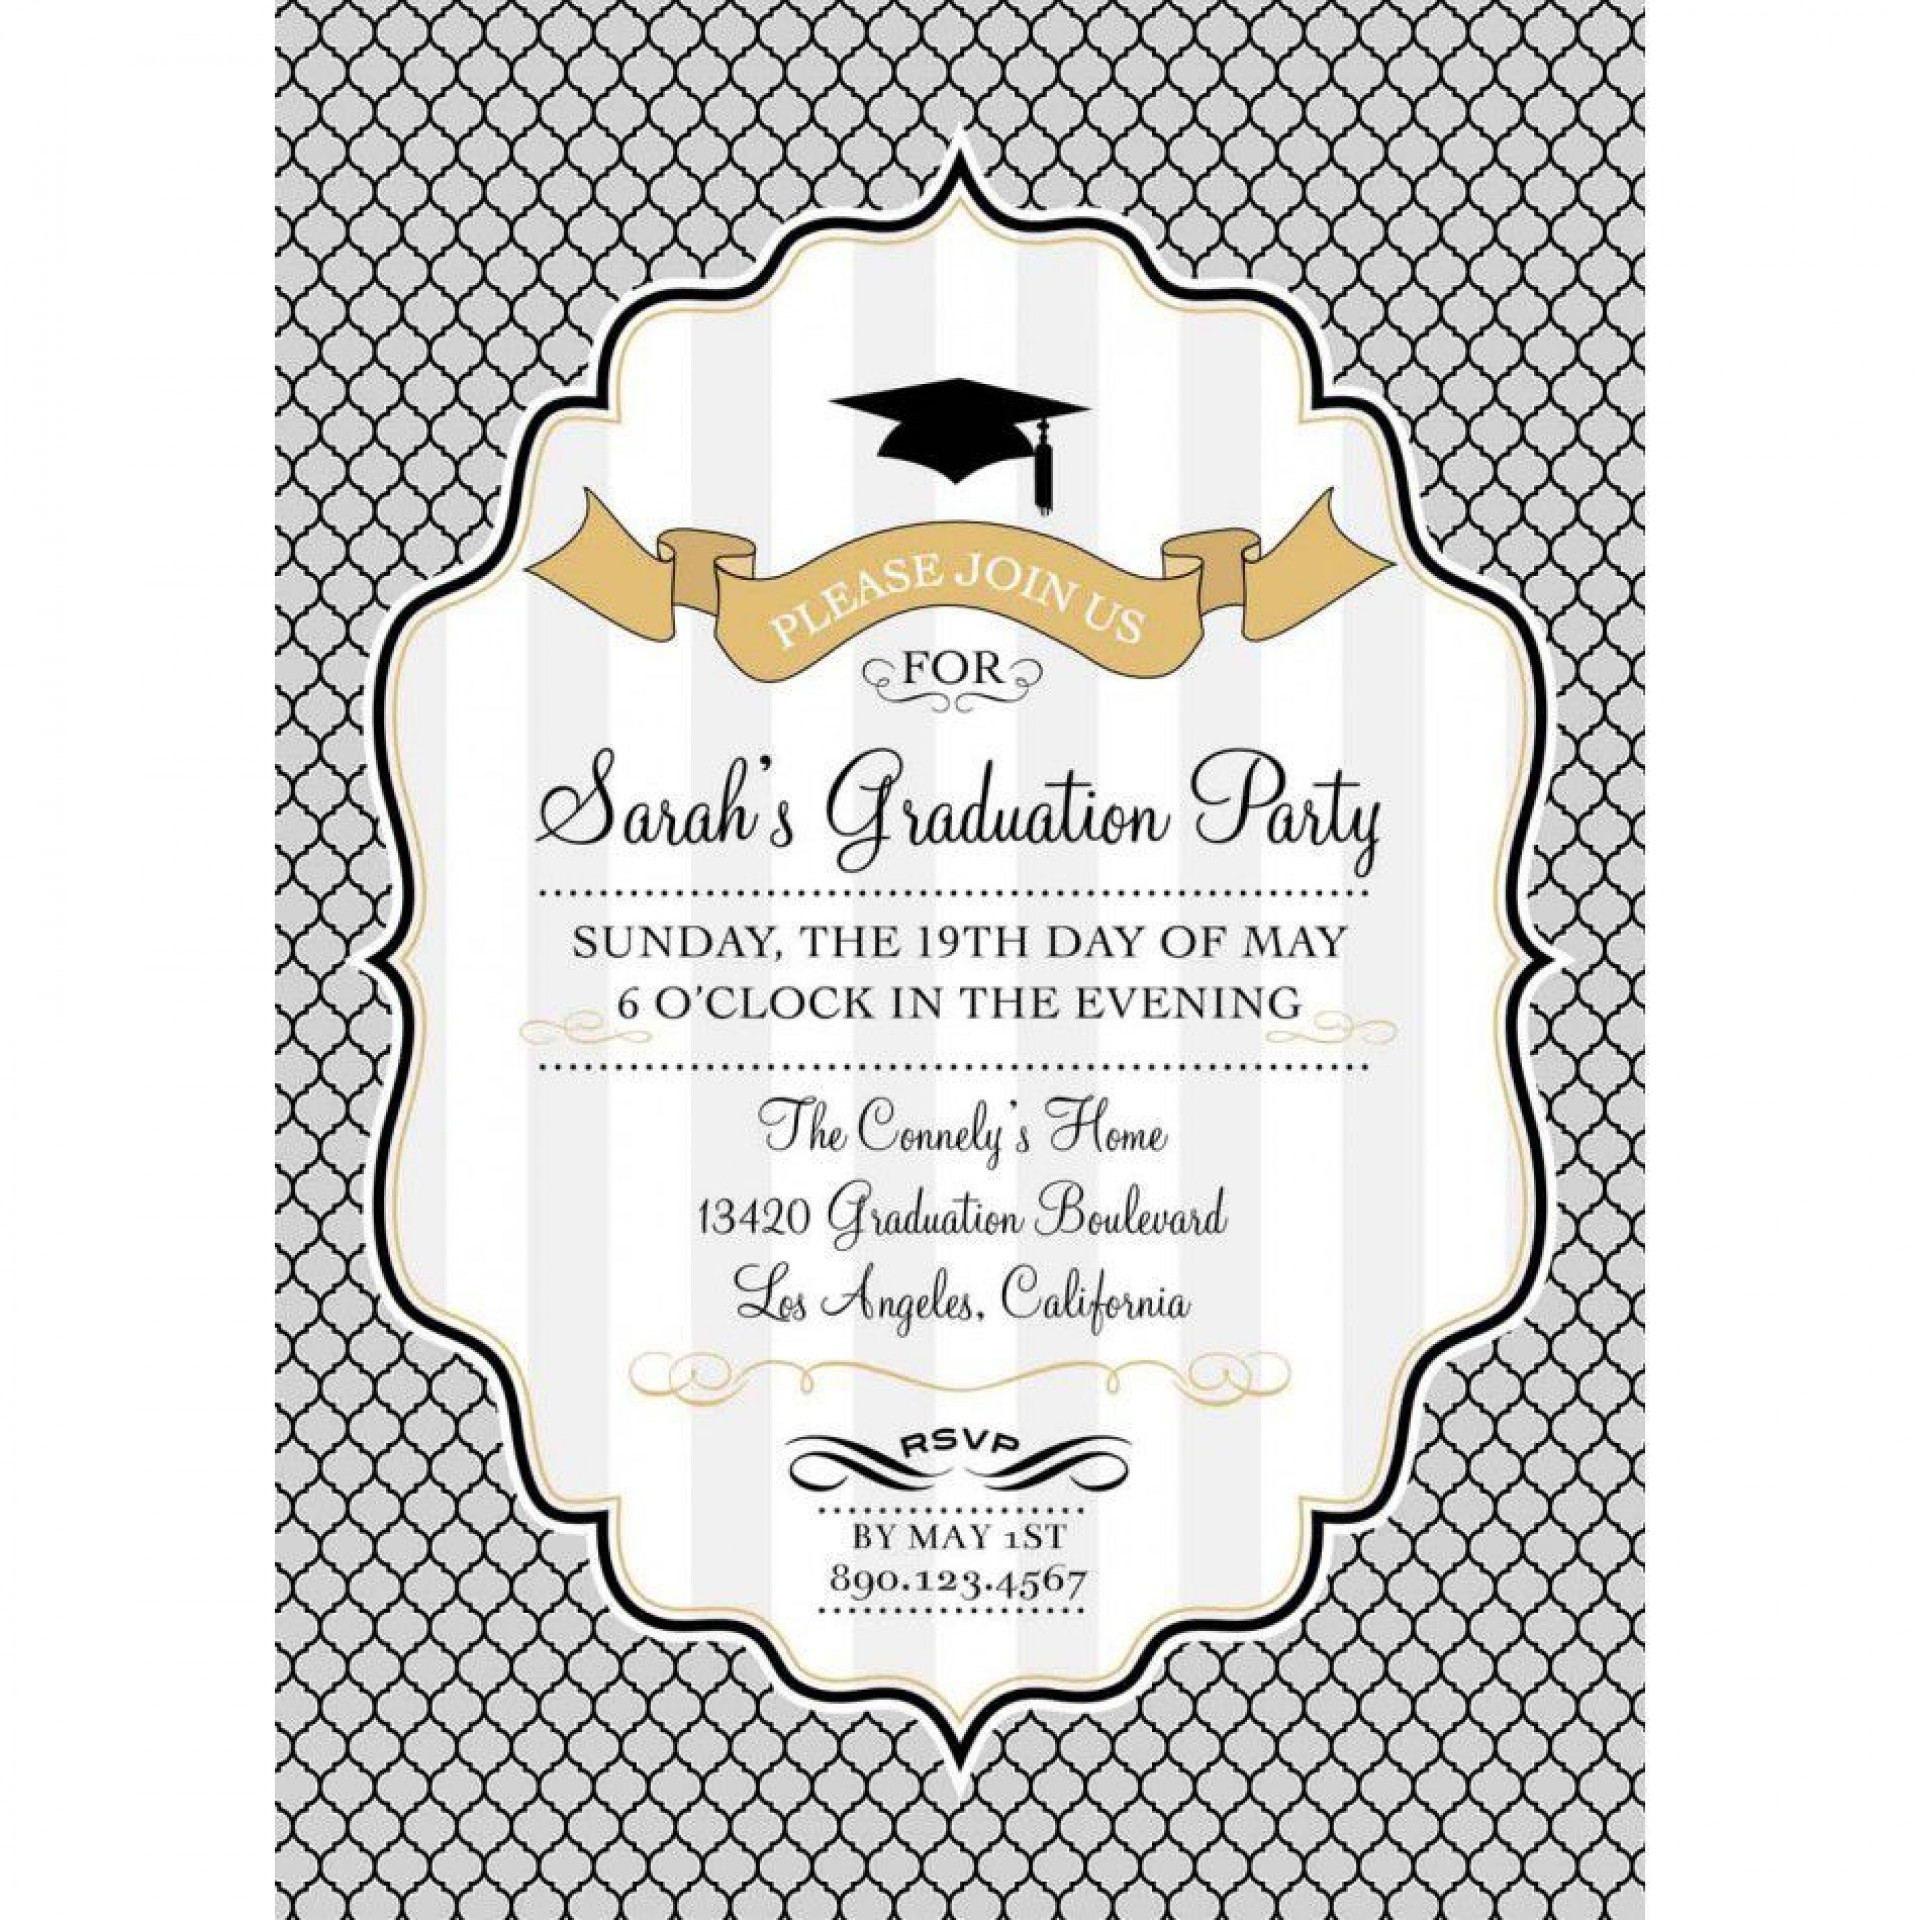 002 Incredible Graduation Party Invitation Template High Resolution  Microsoft Word 4 Per Page1920